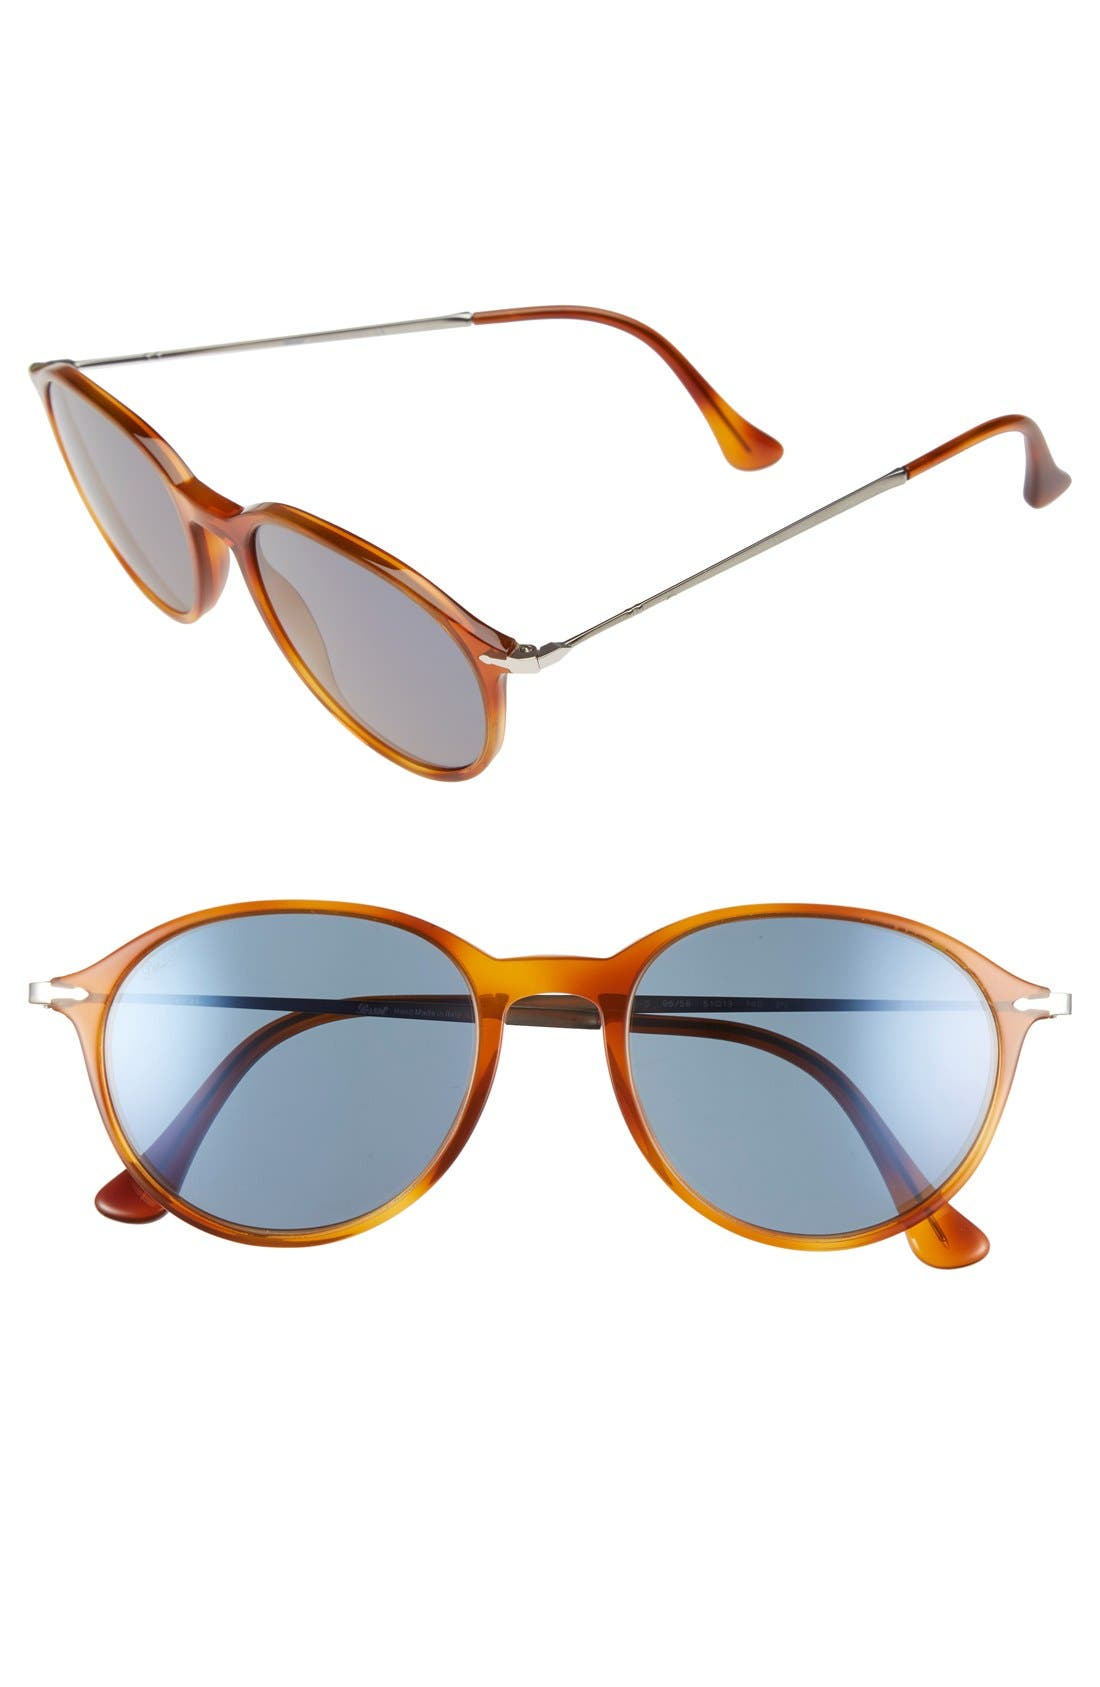 Persol 51mm Sunglasses